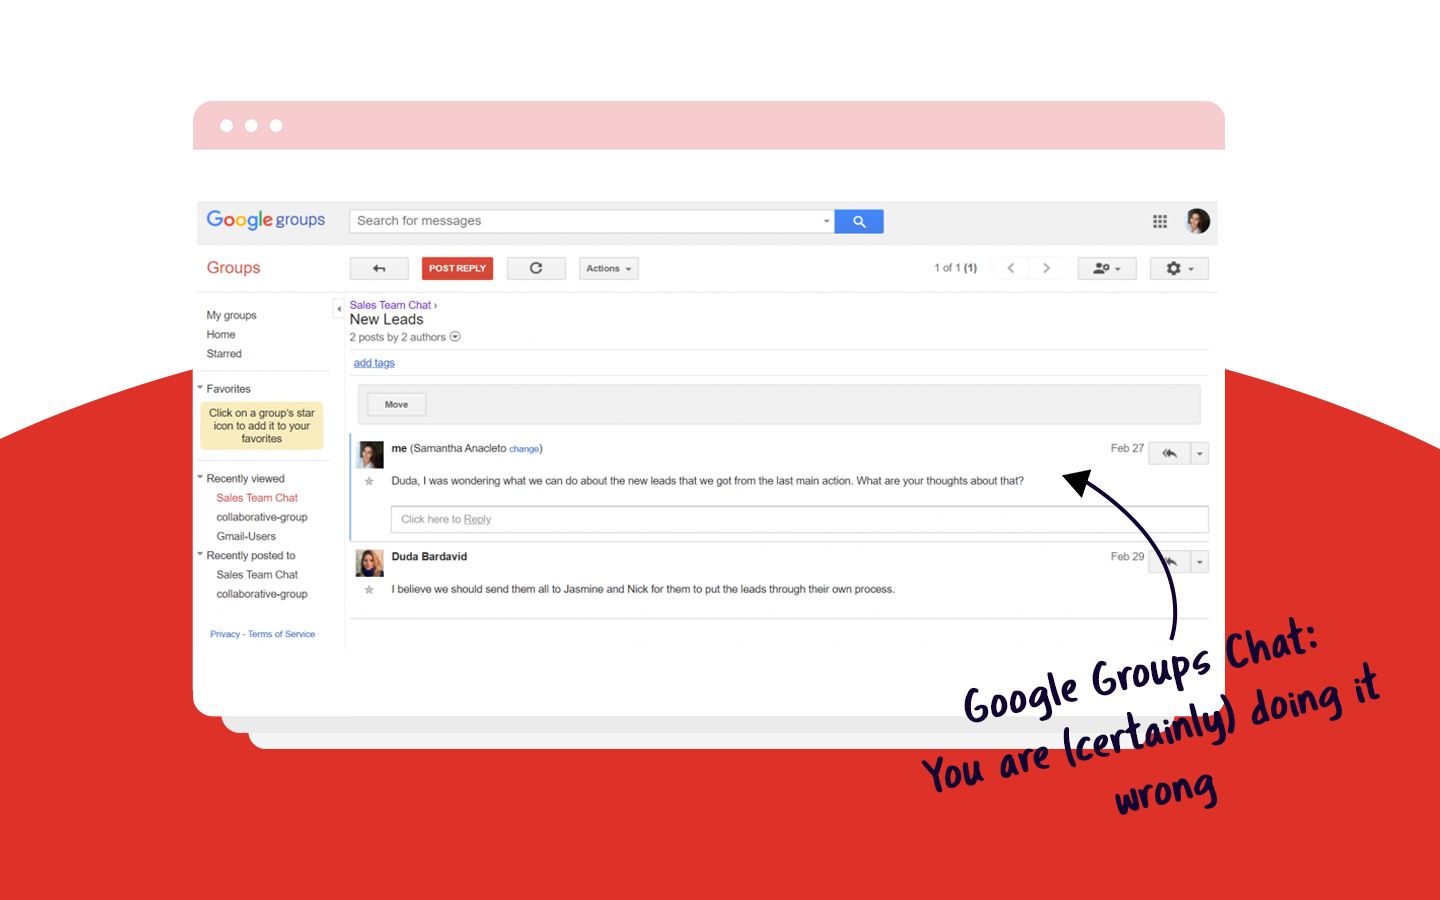 google groups chat